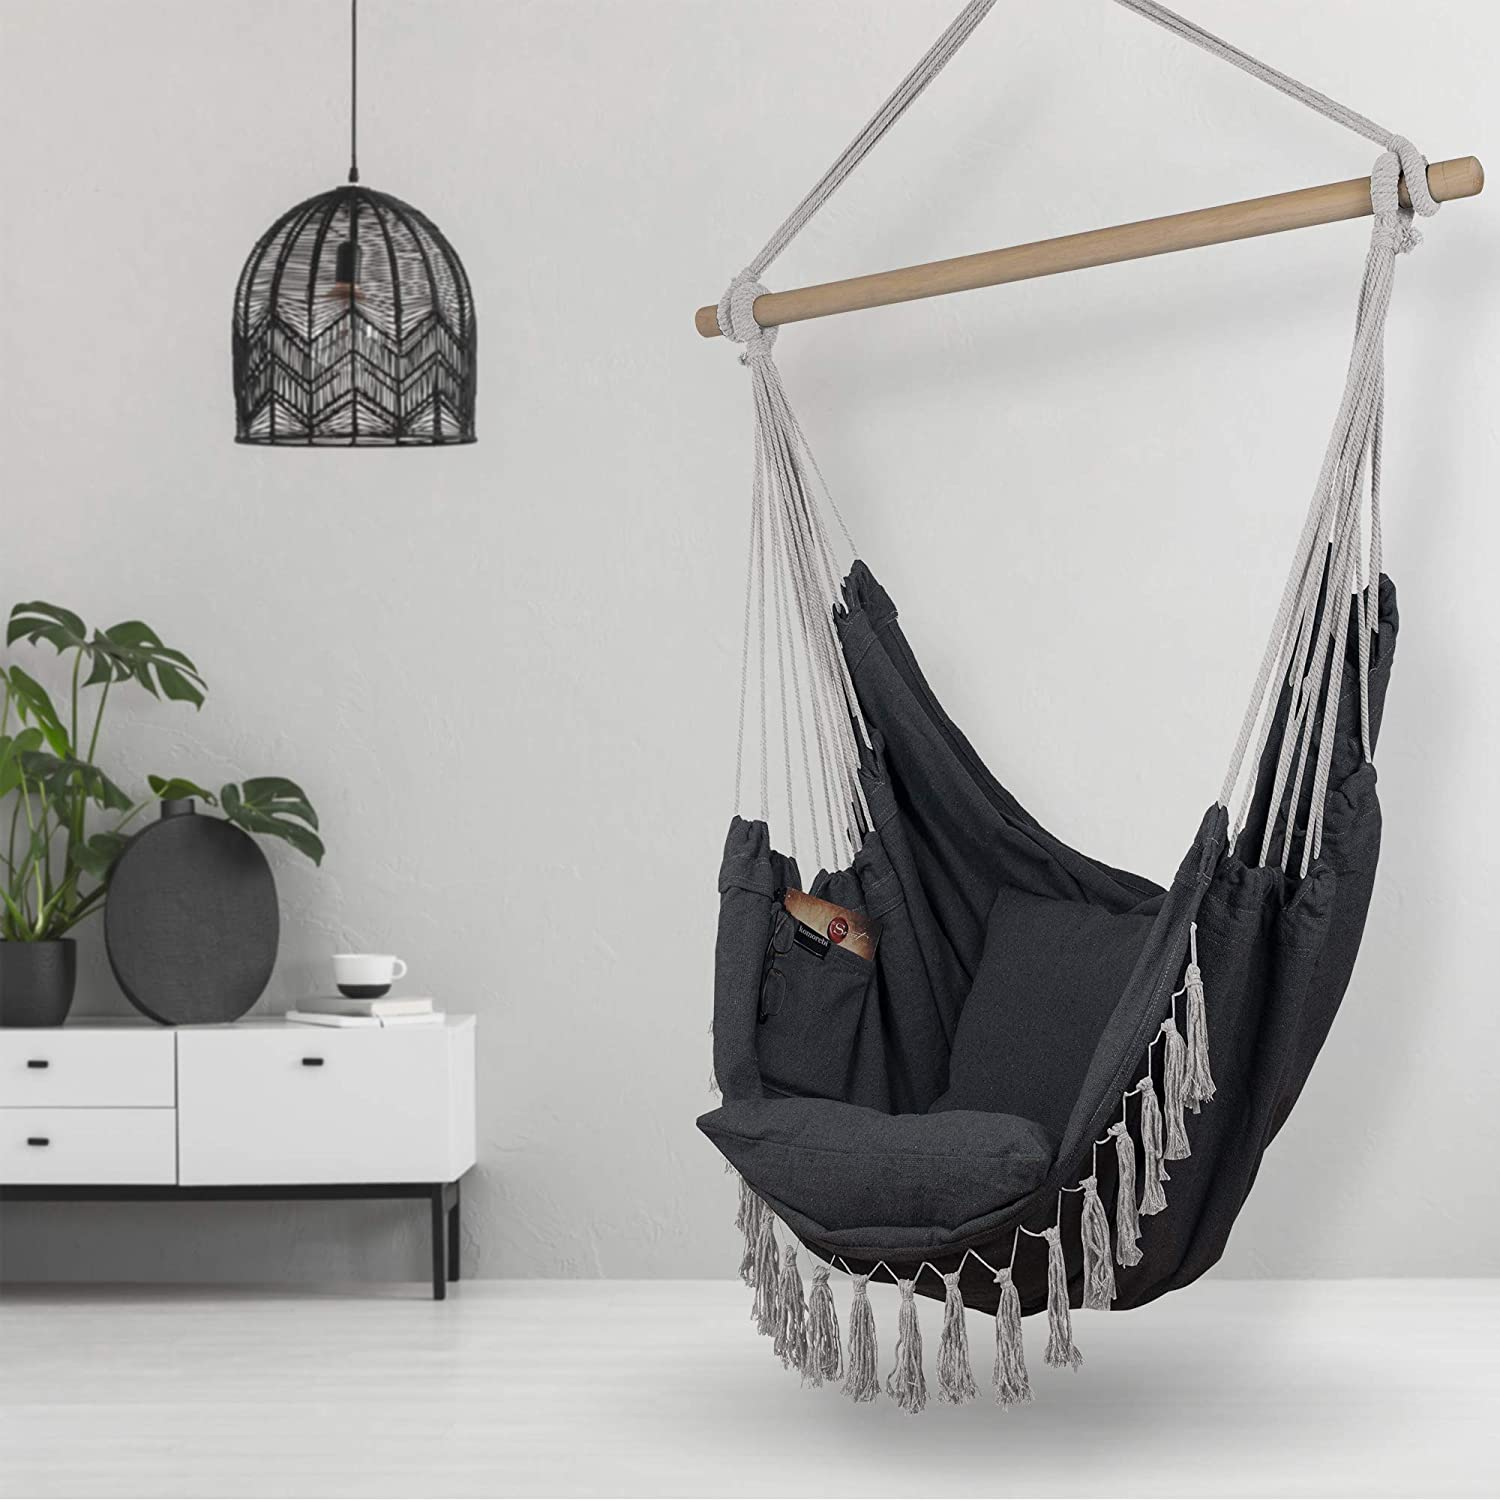 Komorebi Hammock Chair | Hanging Rope Swing Seat for Indoor & Outdoor | Soft & Durable Cotton Canvas | 2 Cushions Included | Large Reading Chair with Pocket for Bedroom, Patio, Porch (Grey)